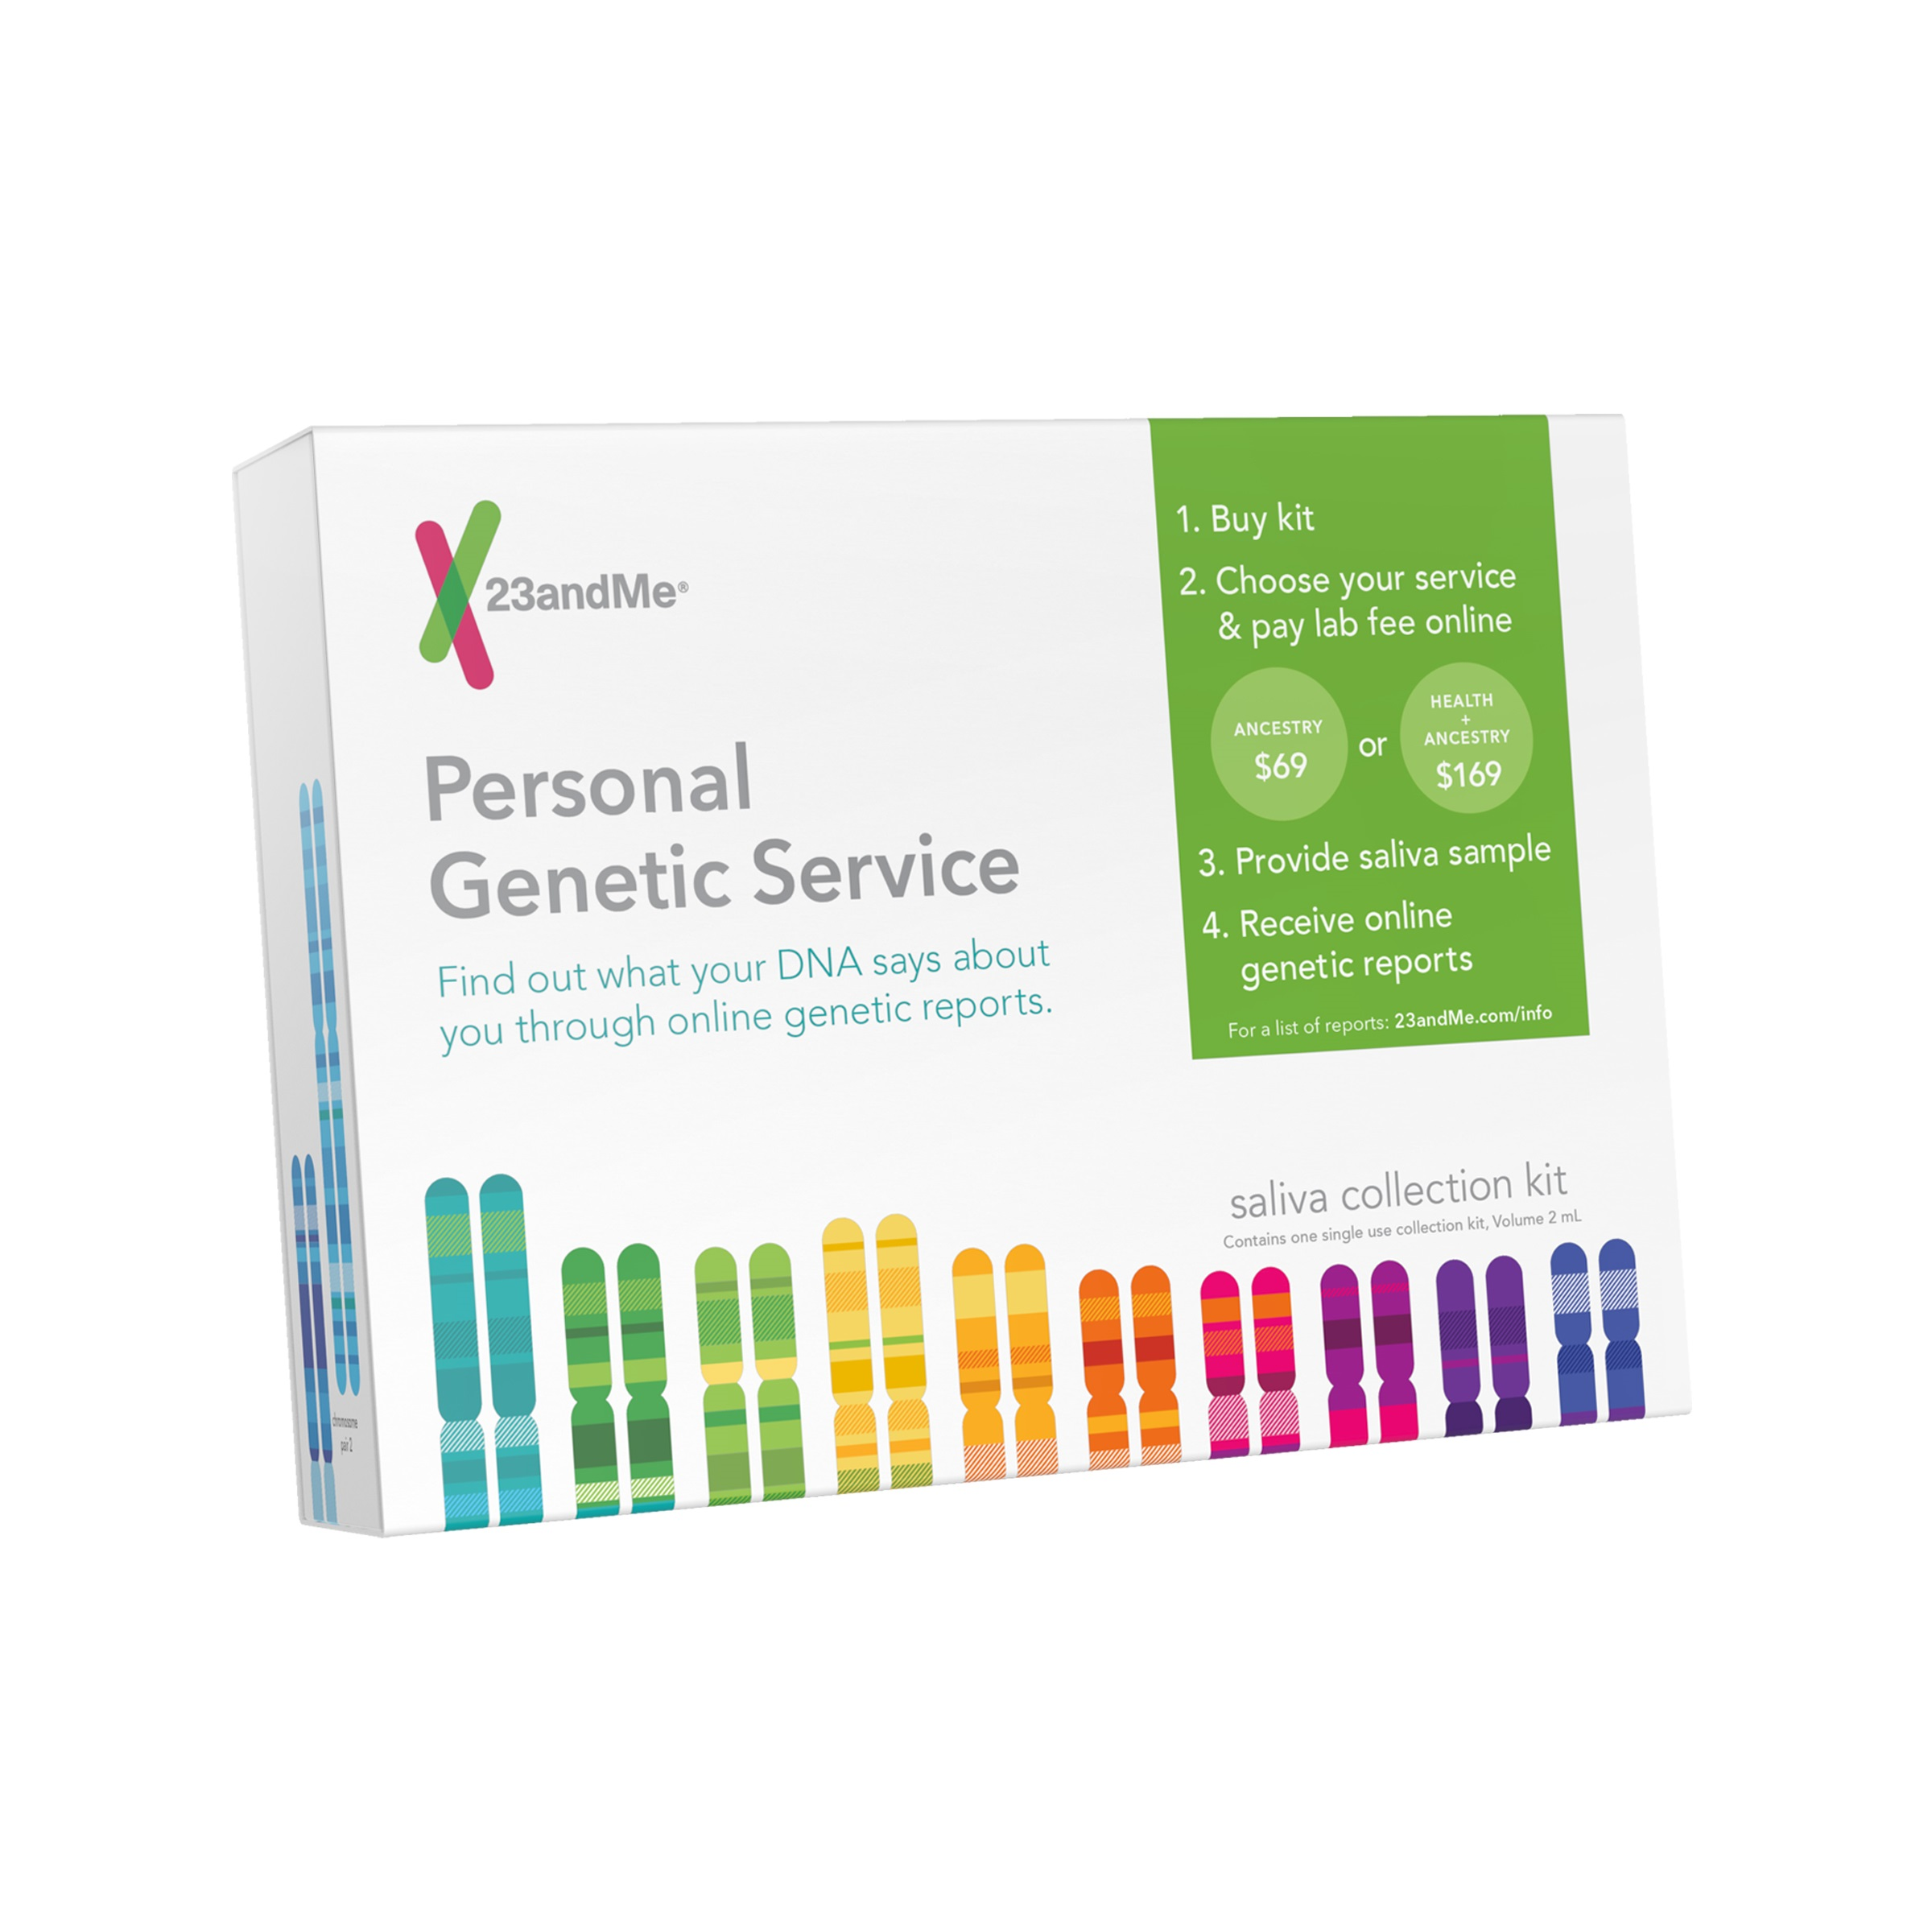 23andMe.com helps find your relatives and potential health issues